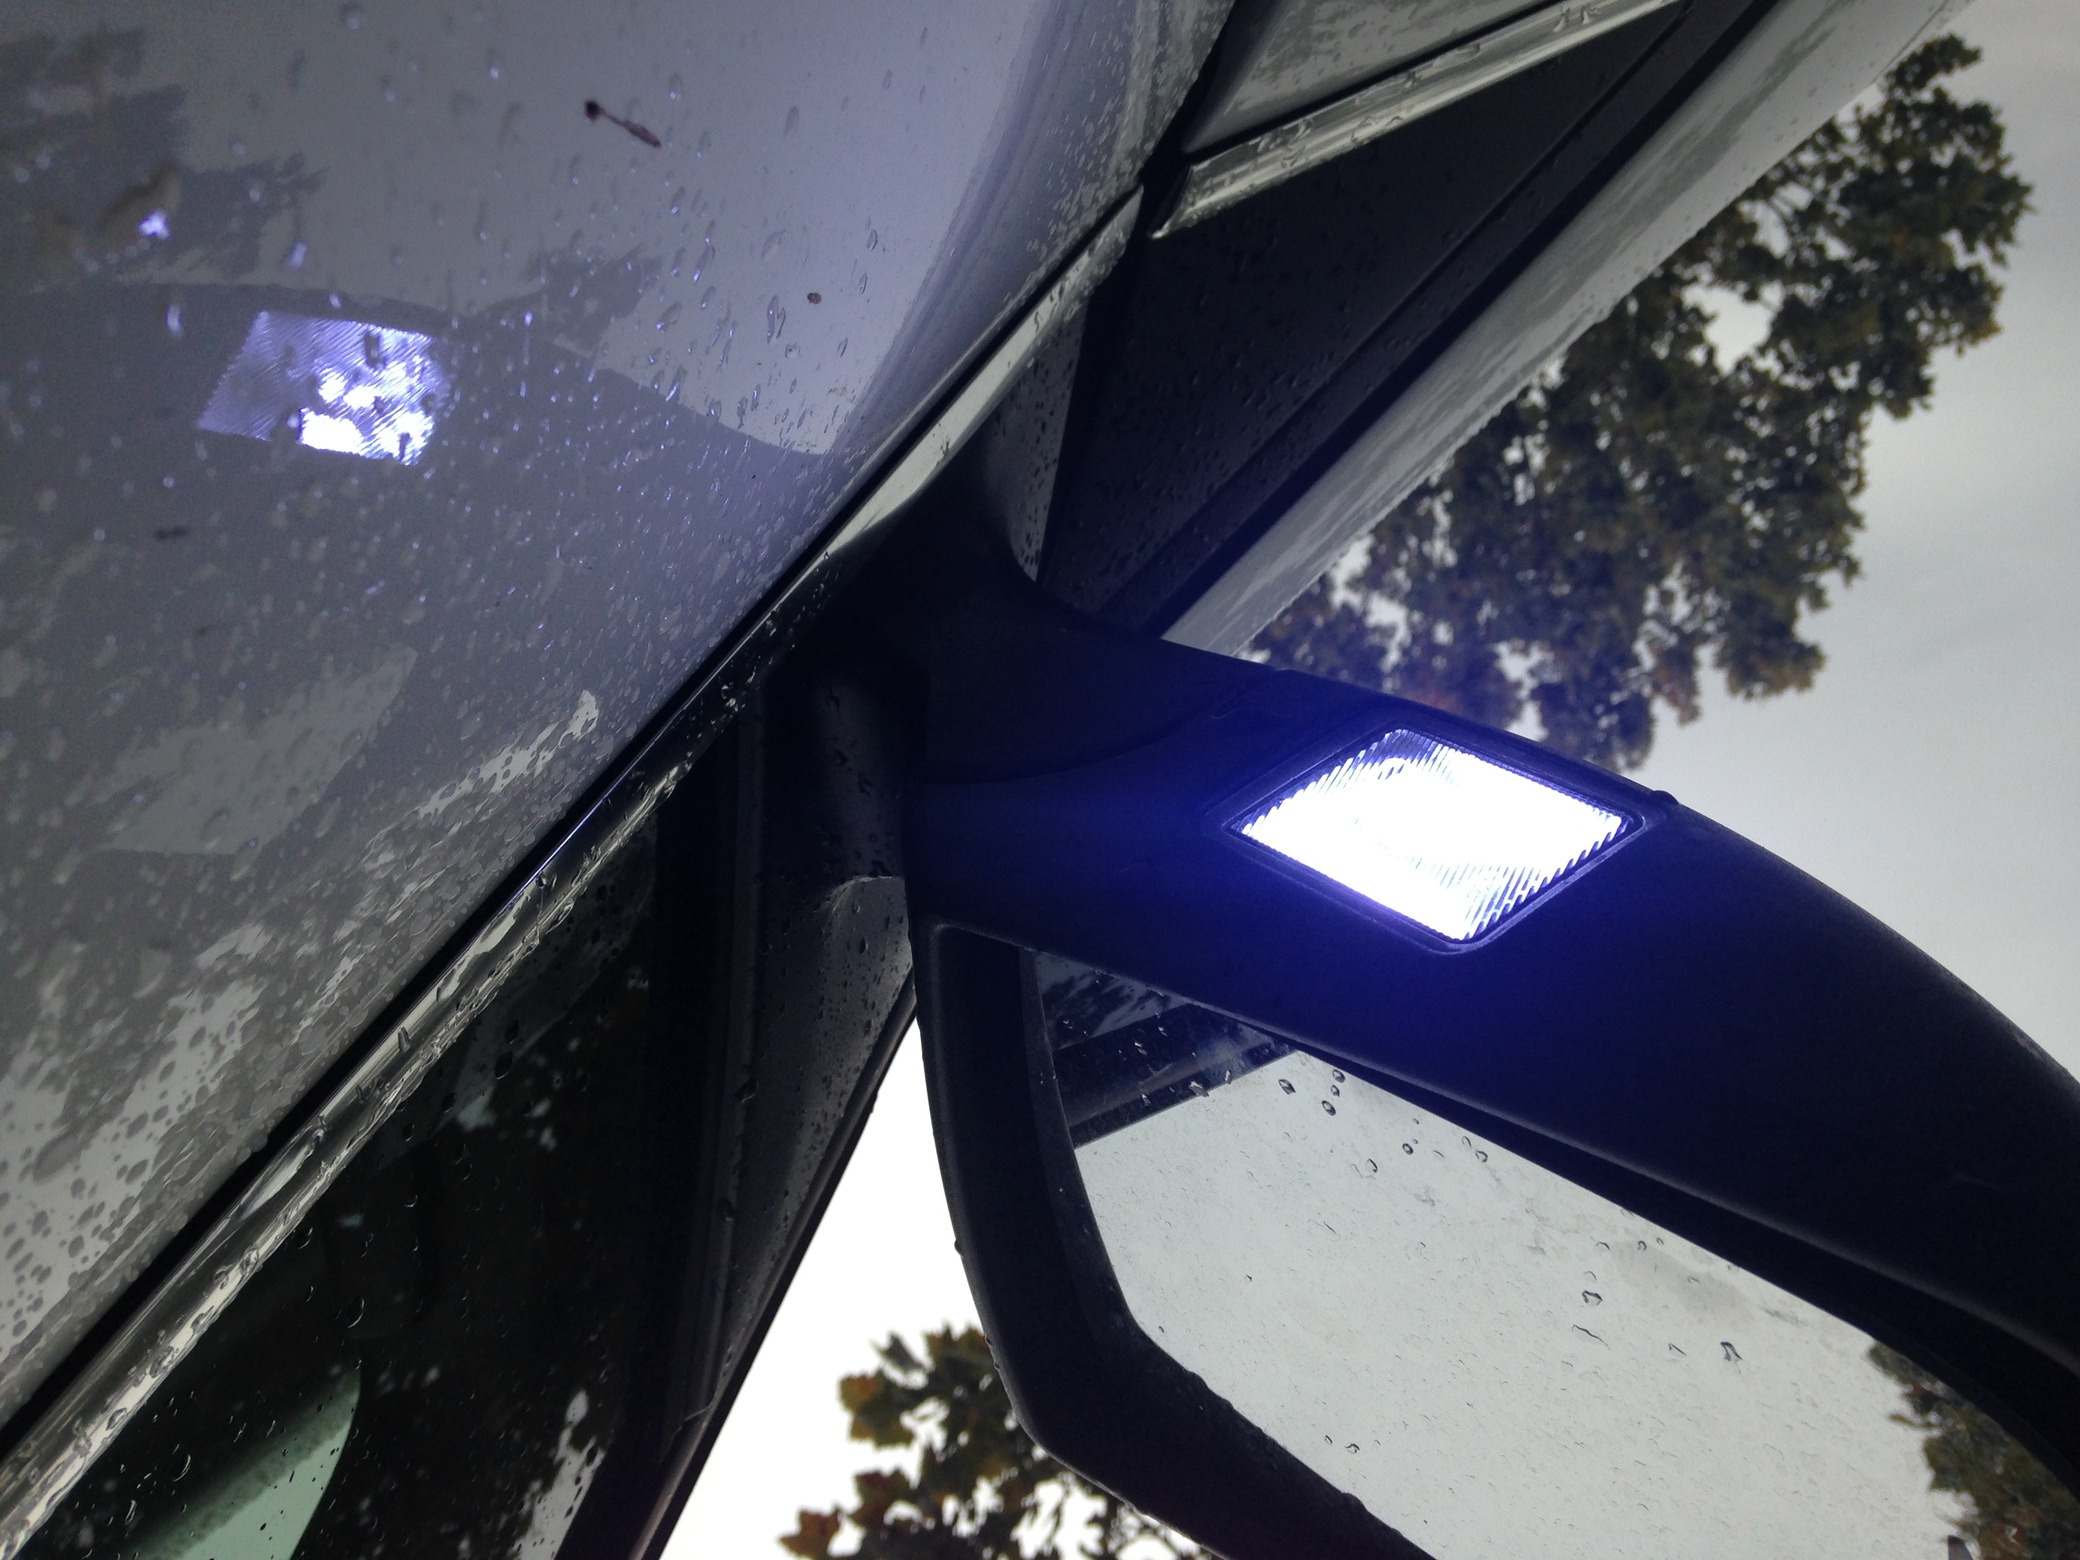 Side Mirror Puddle Lamps Stopped Working, LEDs-img_0956%5B1%5D.jpg